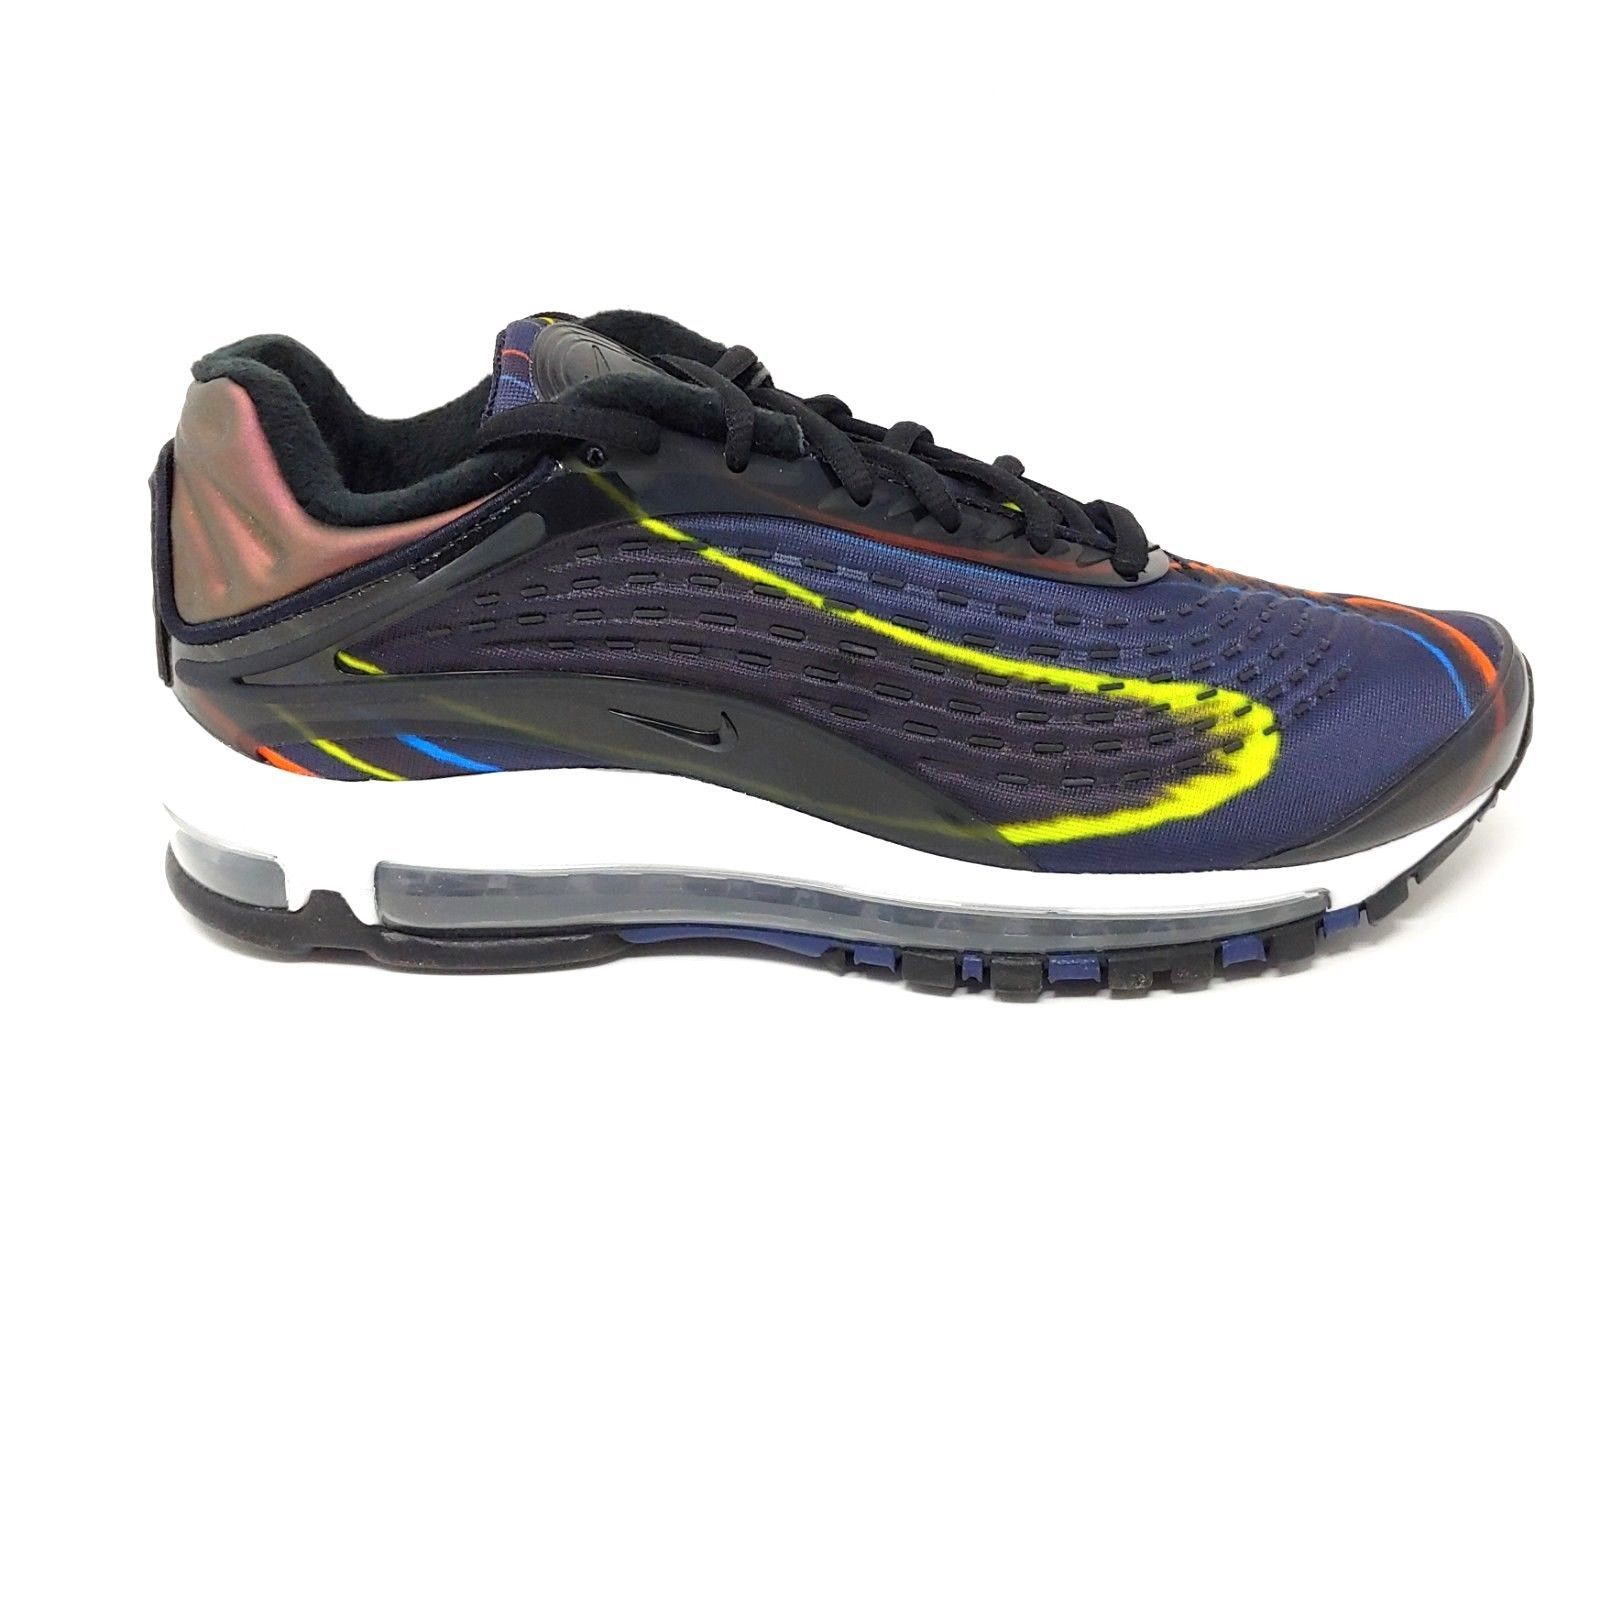 3c4fbbf37 Nike Air Max Deluxe Schwarz Mitternacht and 27 similar items. 57